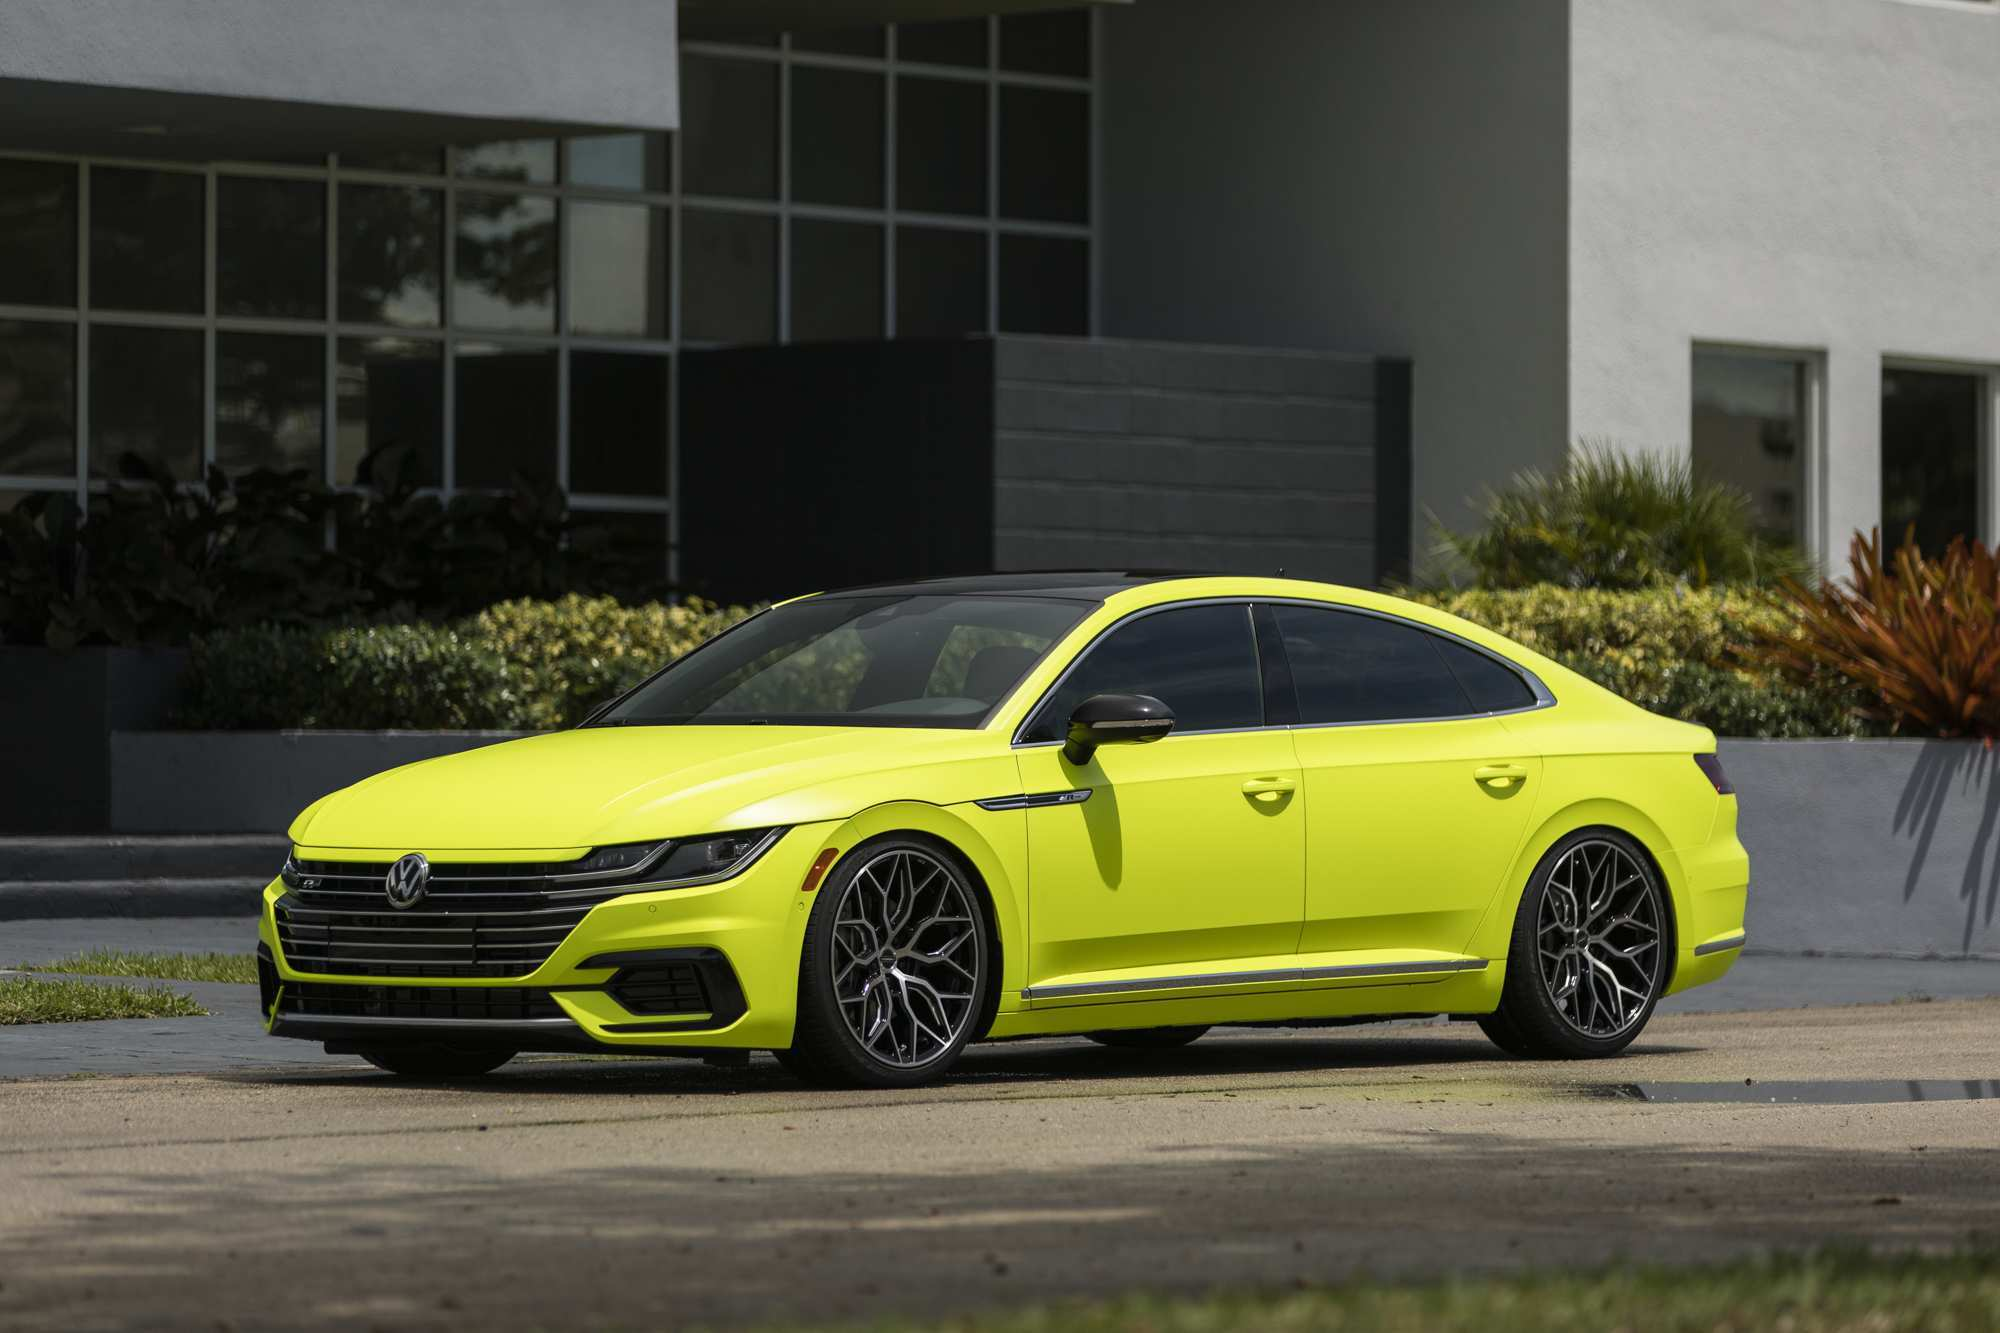 49 Gallery of Volkswagen R Line 2019 Redesign And Concept Images with Volkswagen R Line 2019 Redesign And Concept